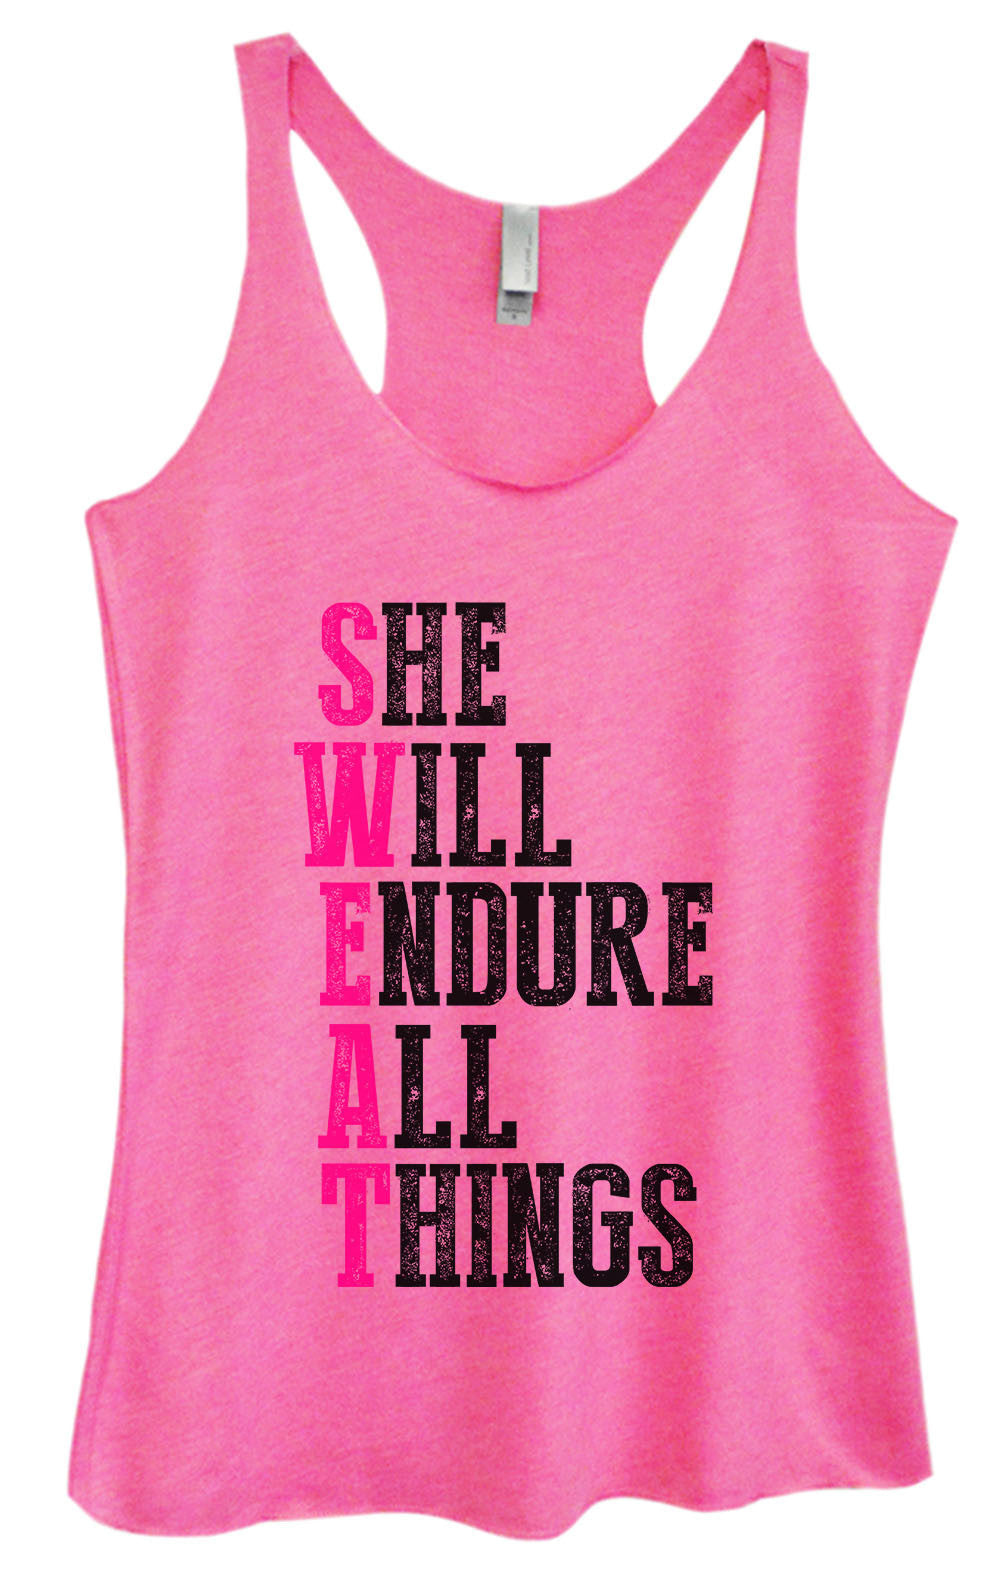 Womens Fashion Triblend Tank Top - She Will Endure All Things - Tri-1582 - Funny Shirts Tank Tops Burnouts and Triblends  - 4